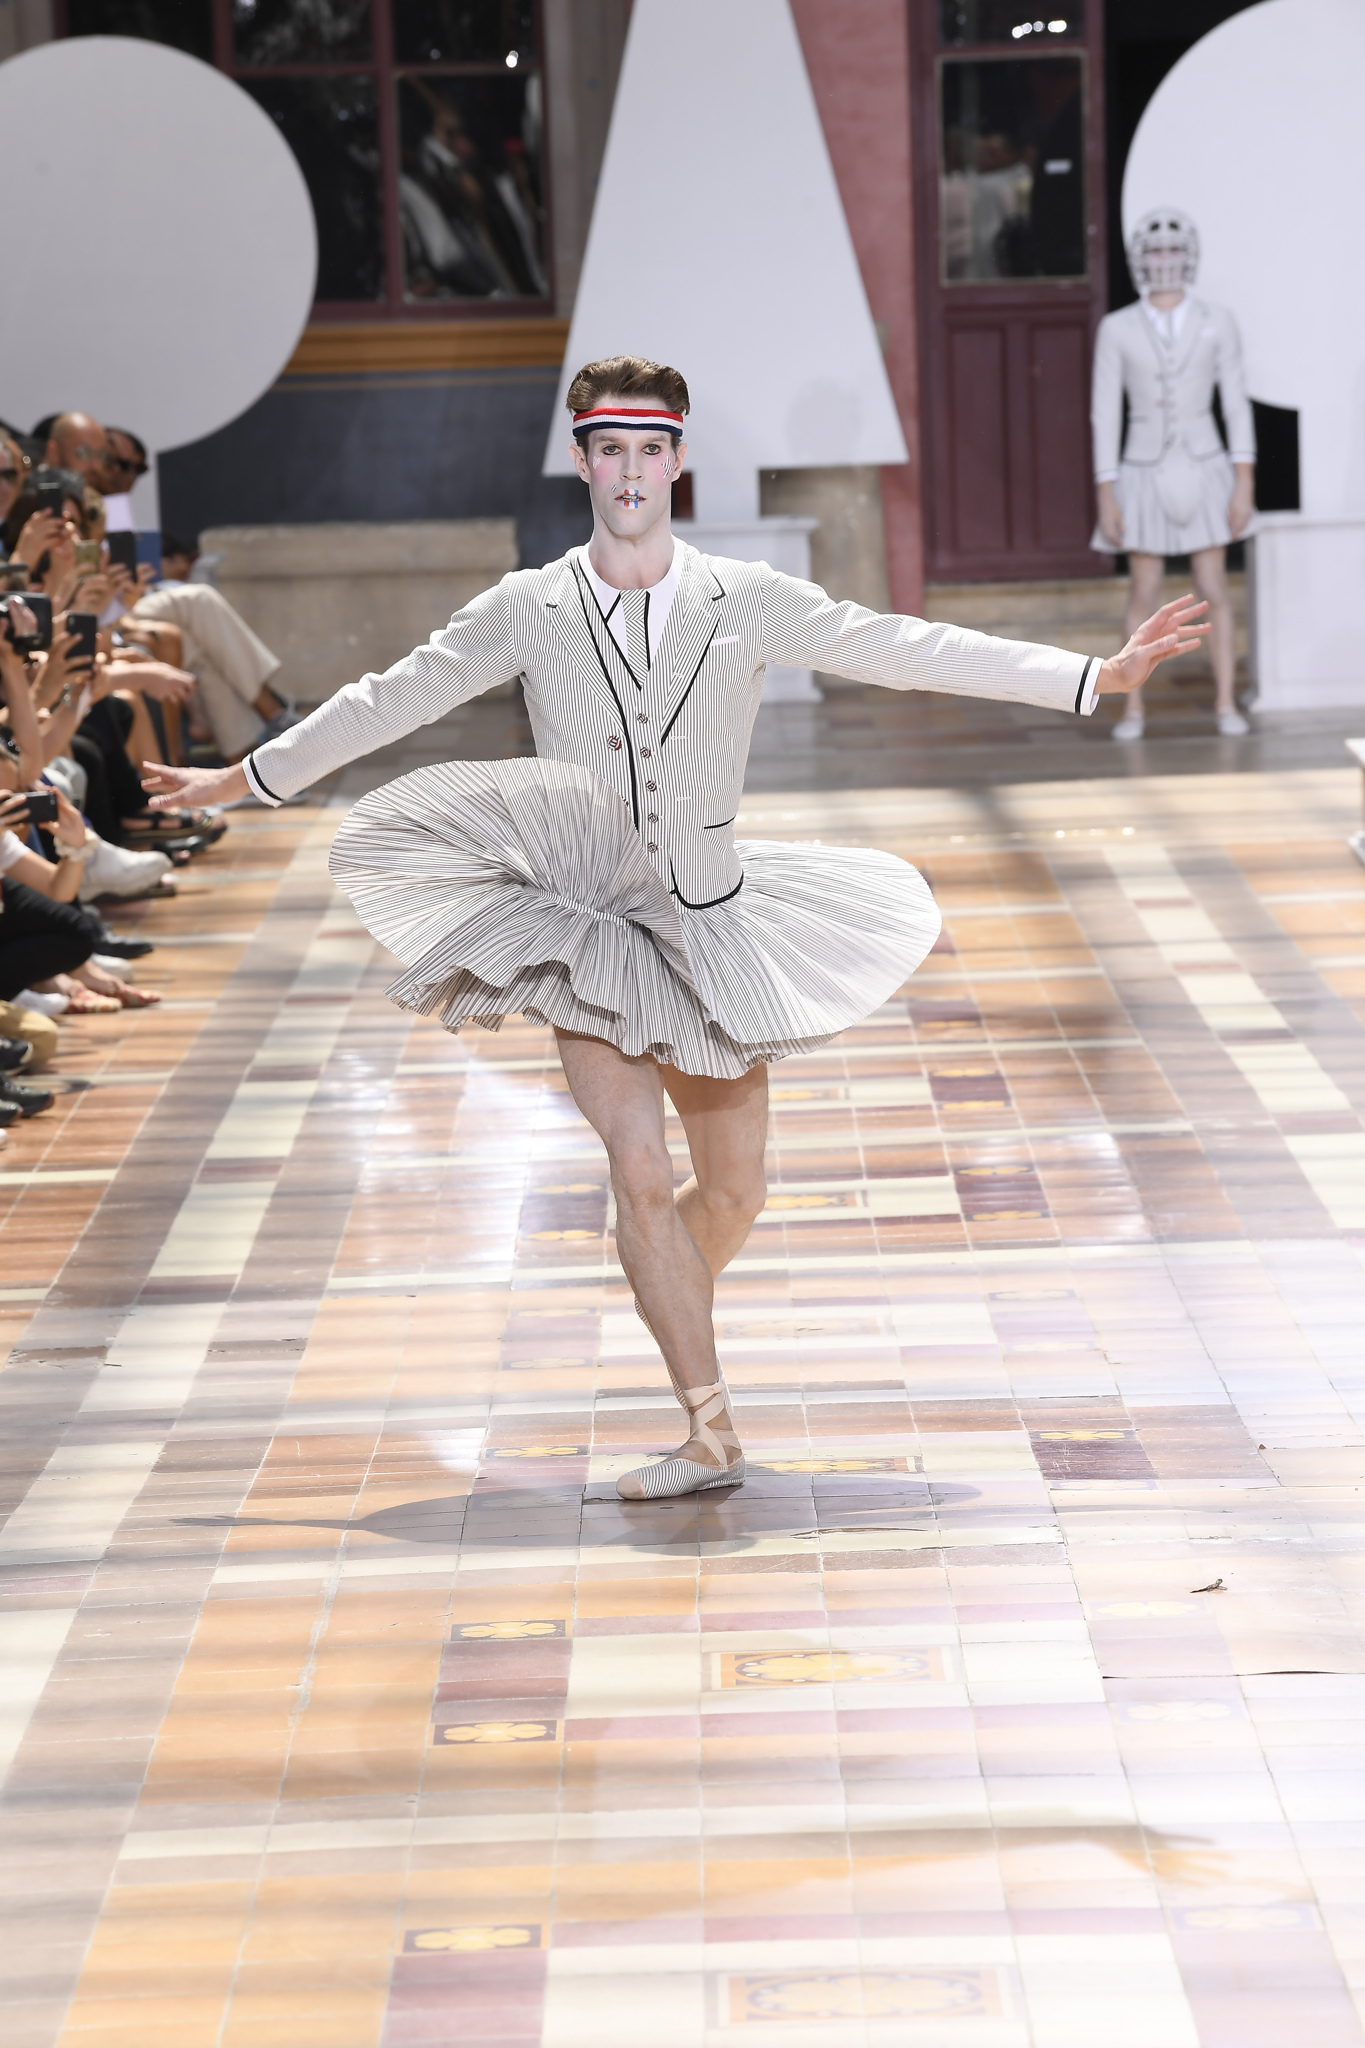 Runway at Thom Browne Men's SS 2020, photographed in Paris on June 22nd, 2019.